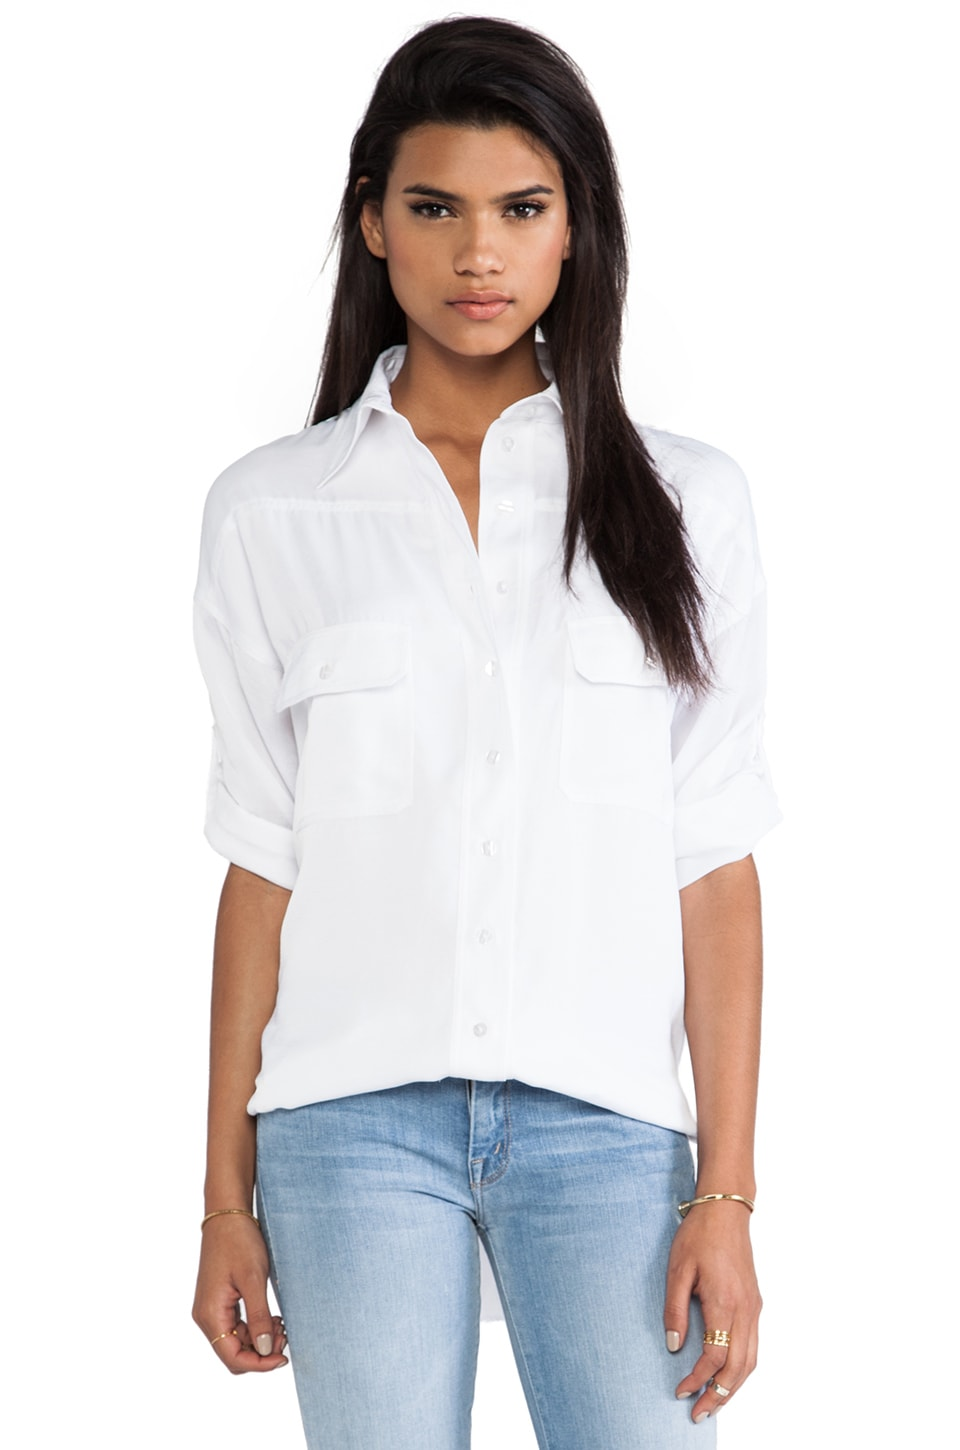 primary Wingback Camper Blouse in White